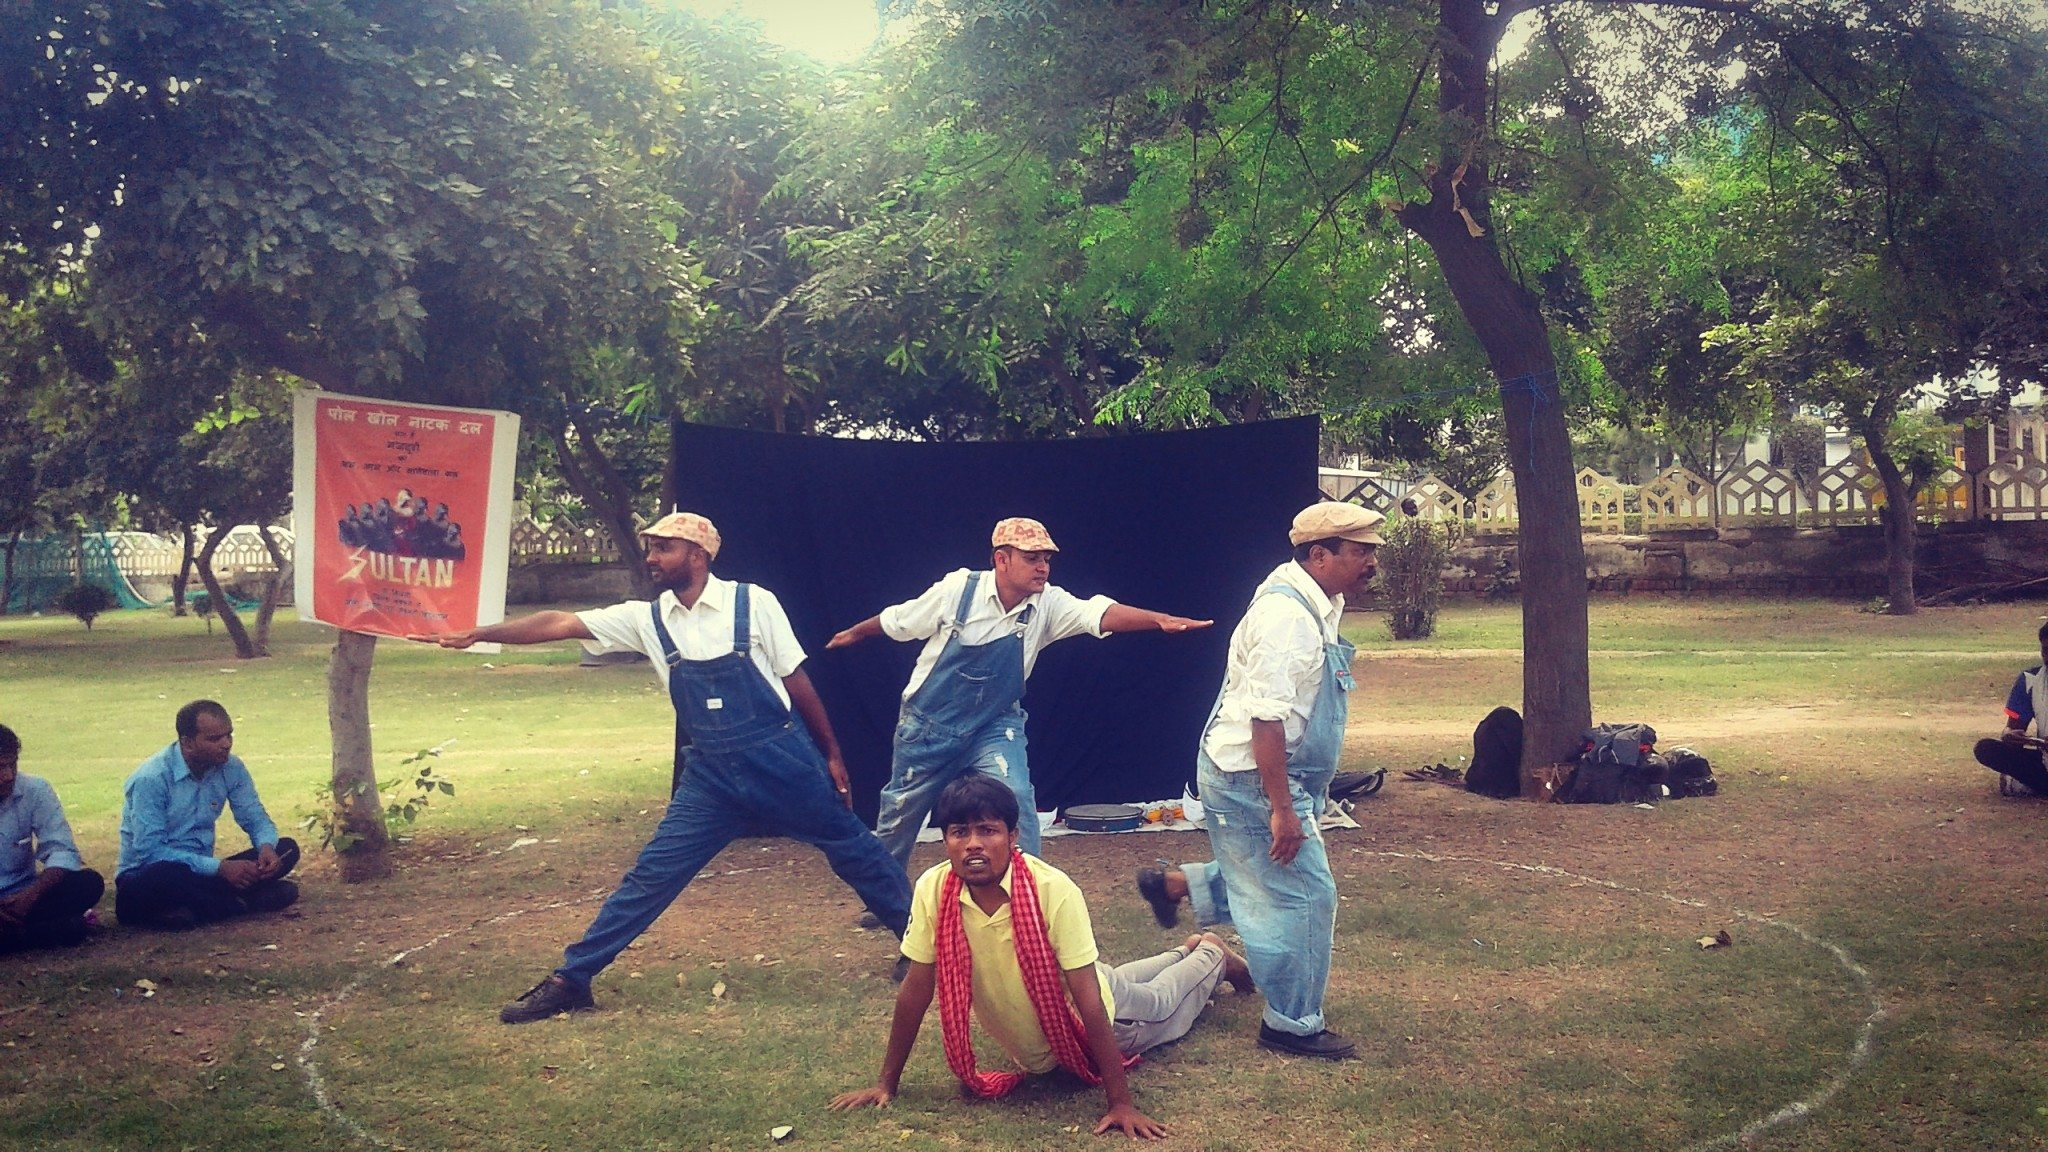 A street-play in progress in SPM Park, IMT Manesar, Photo credit: Abhishek Jha